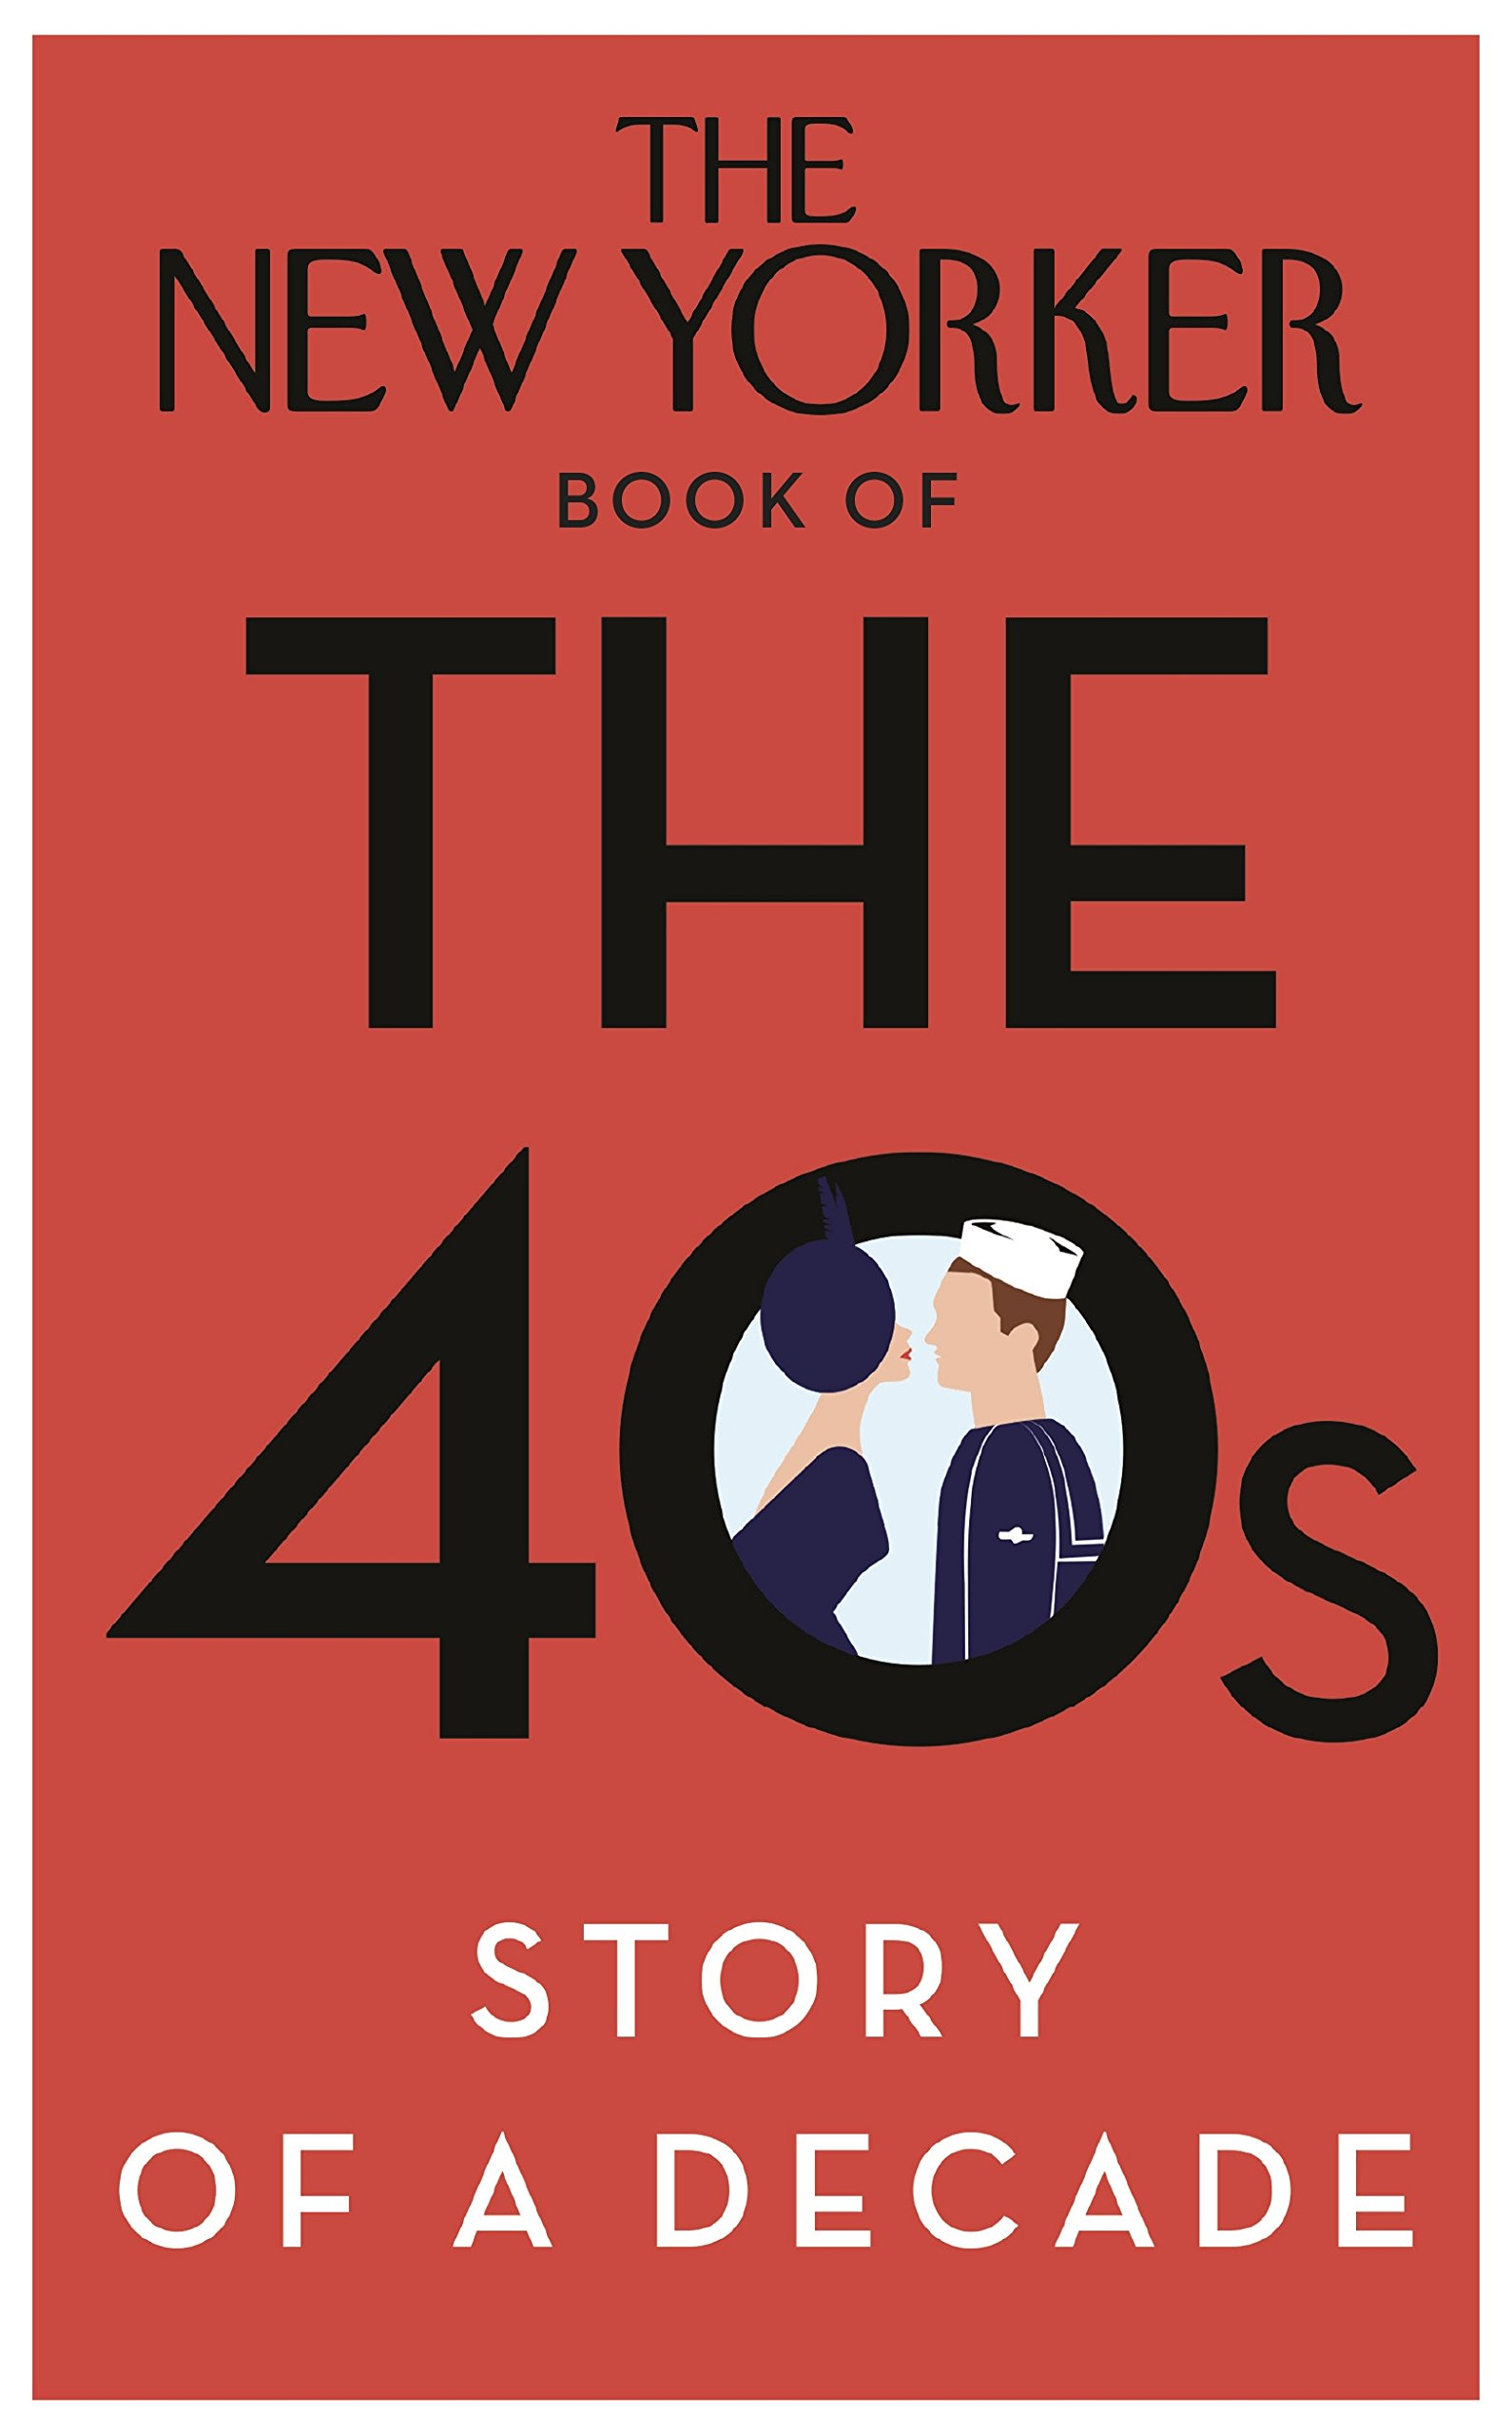 The New Yorker Book of the 40s: Story of a Decade: Amazon.co.uk: TBC:  9780434022410: Books